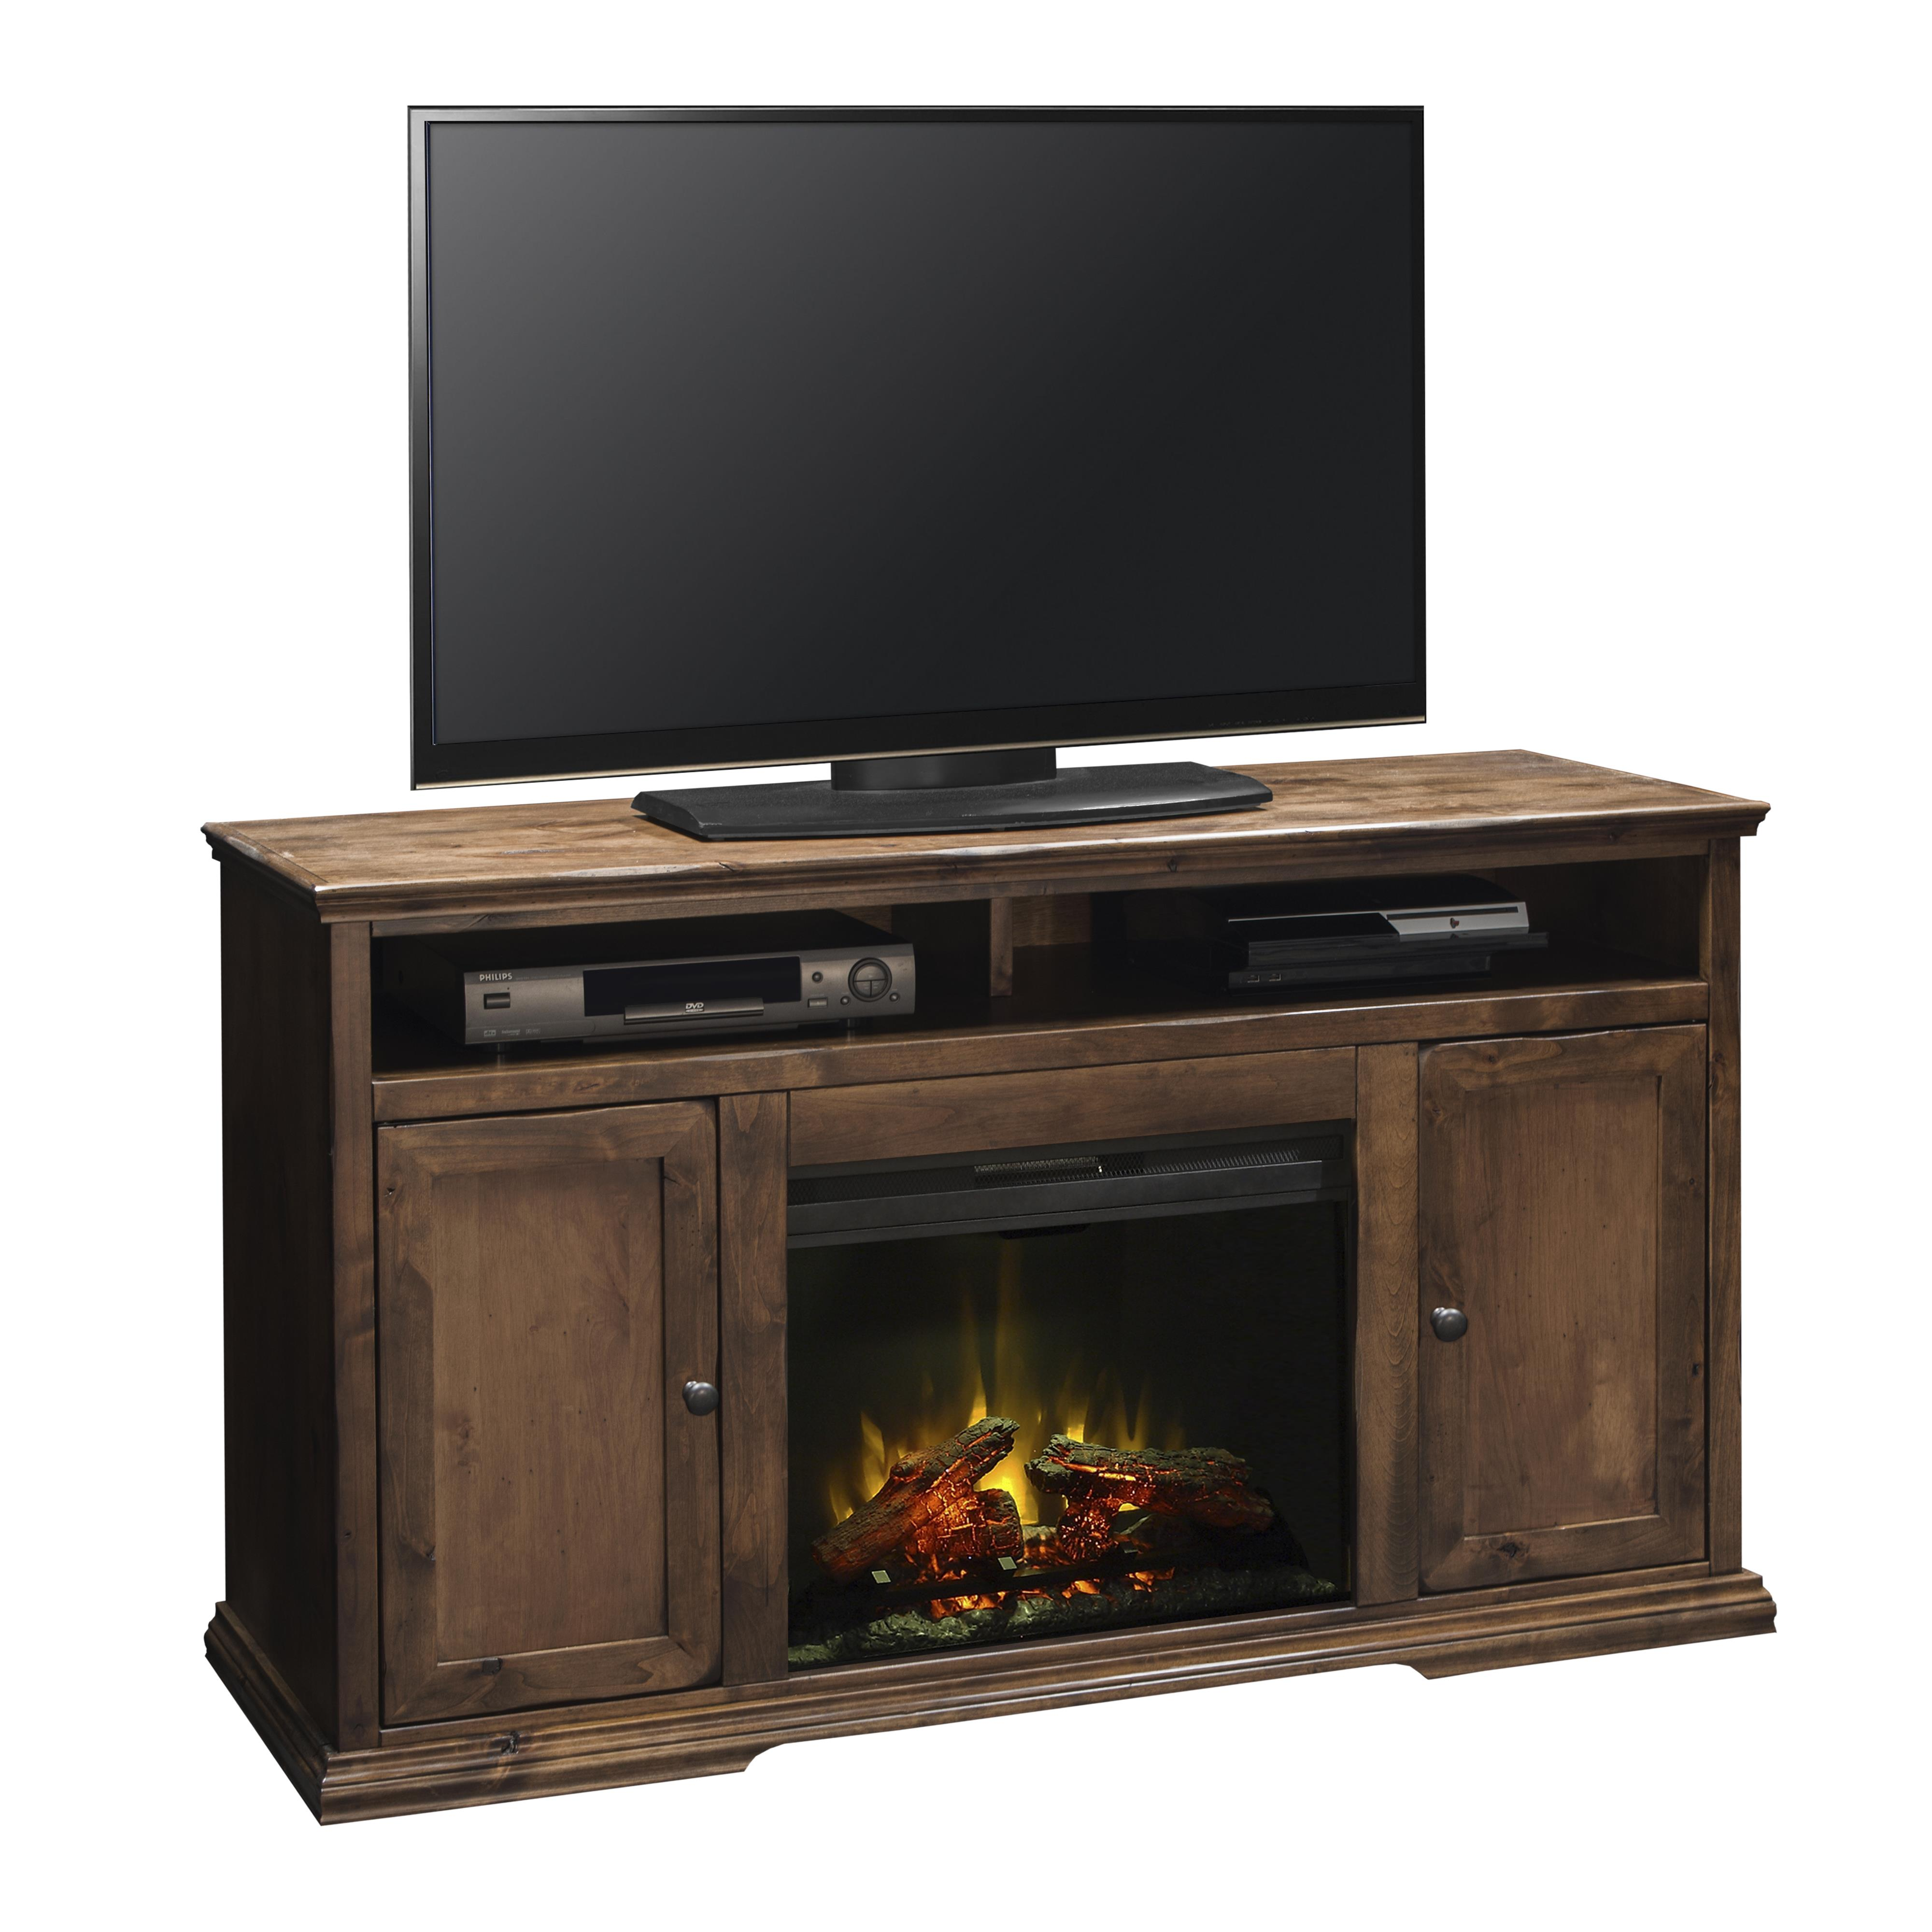 Legends Furniture Bozeman Collection Fireplace Console - Item Number: BZ5304-KIT